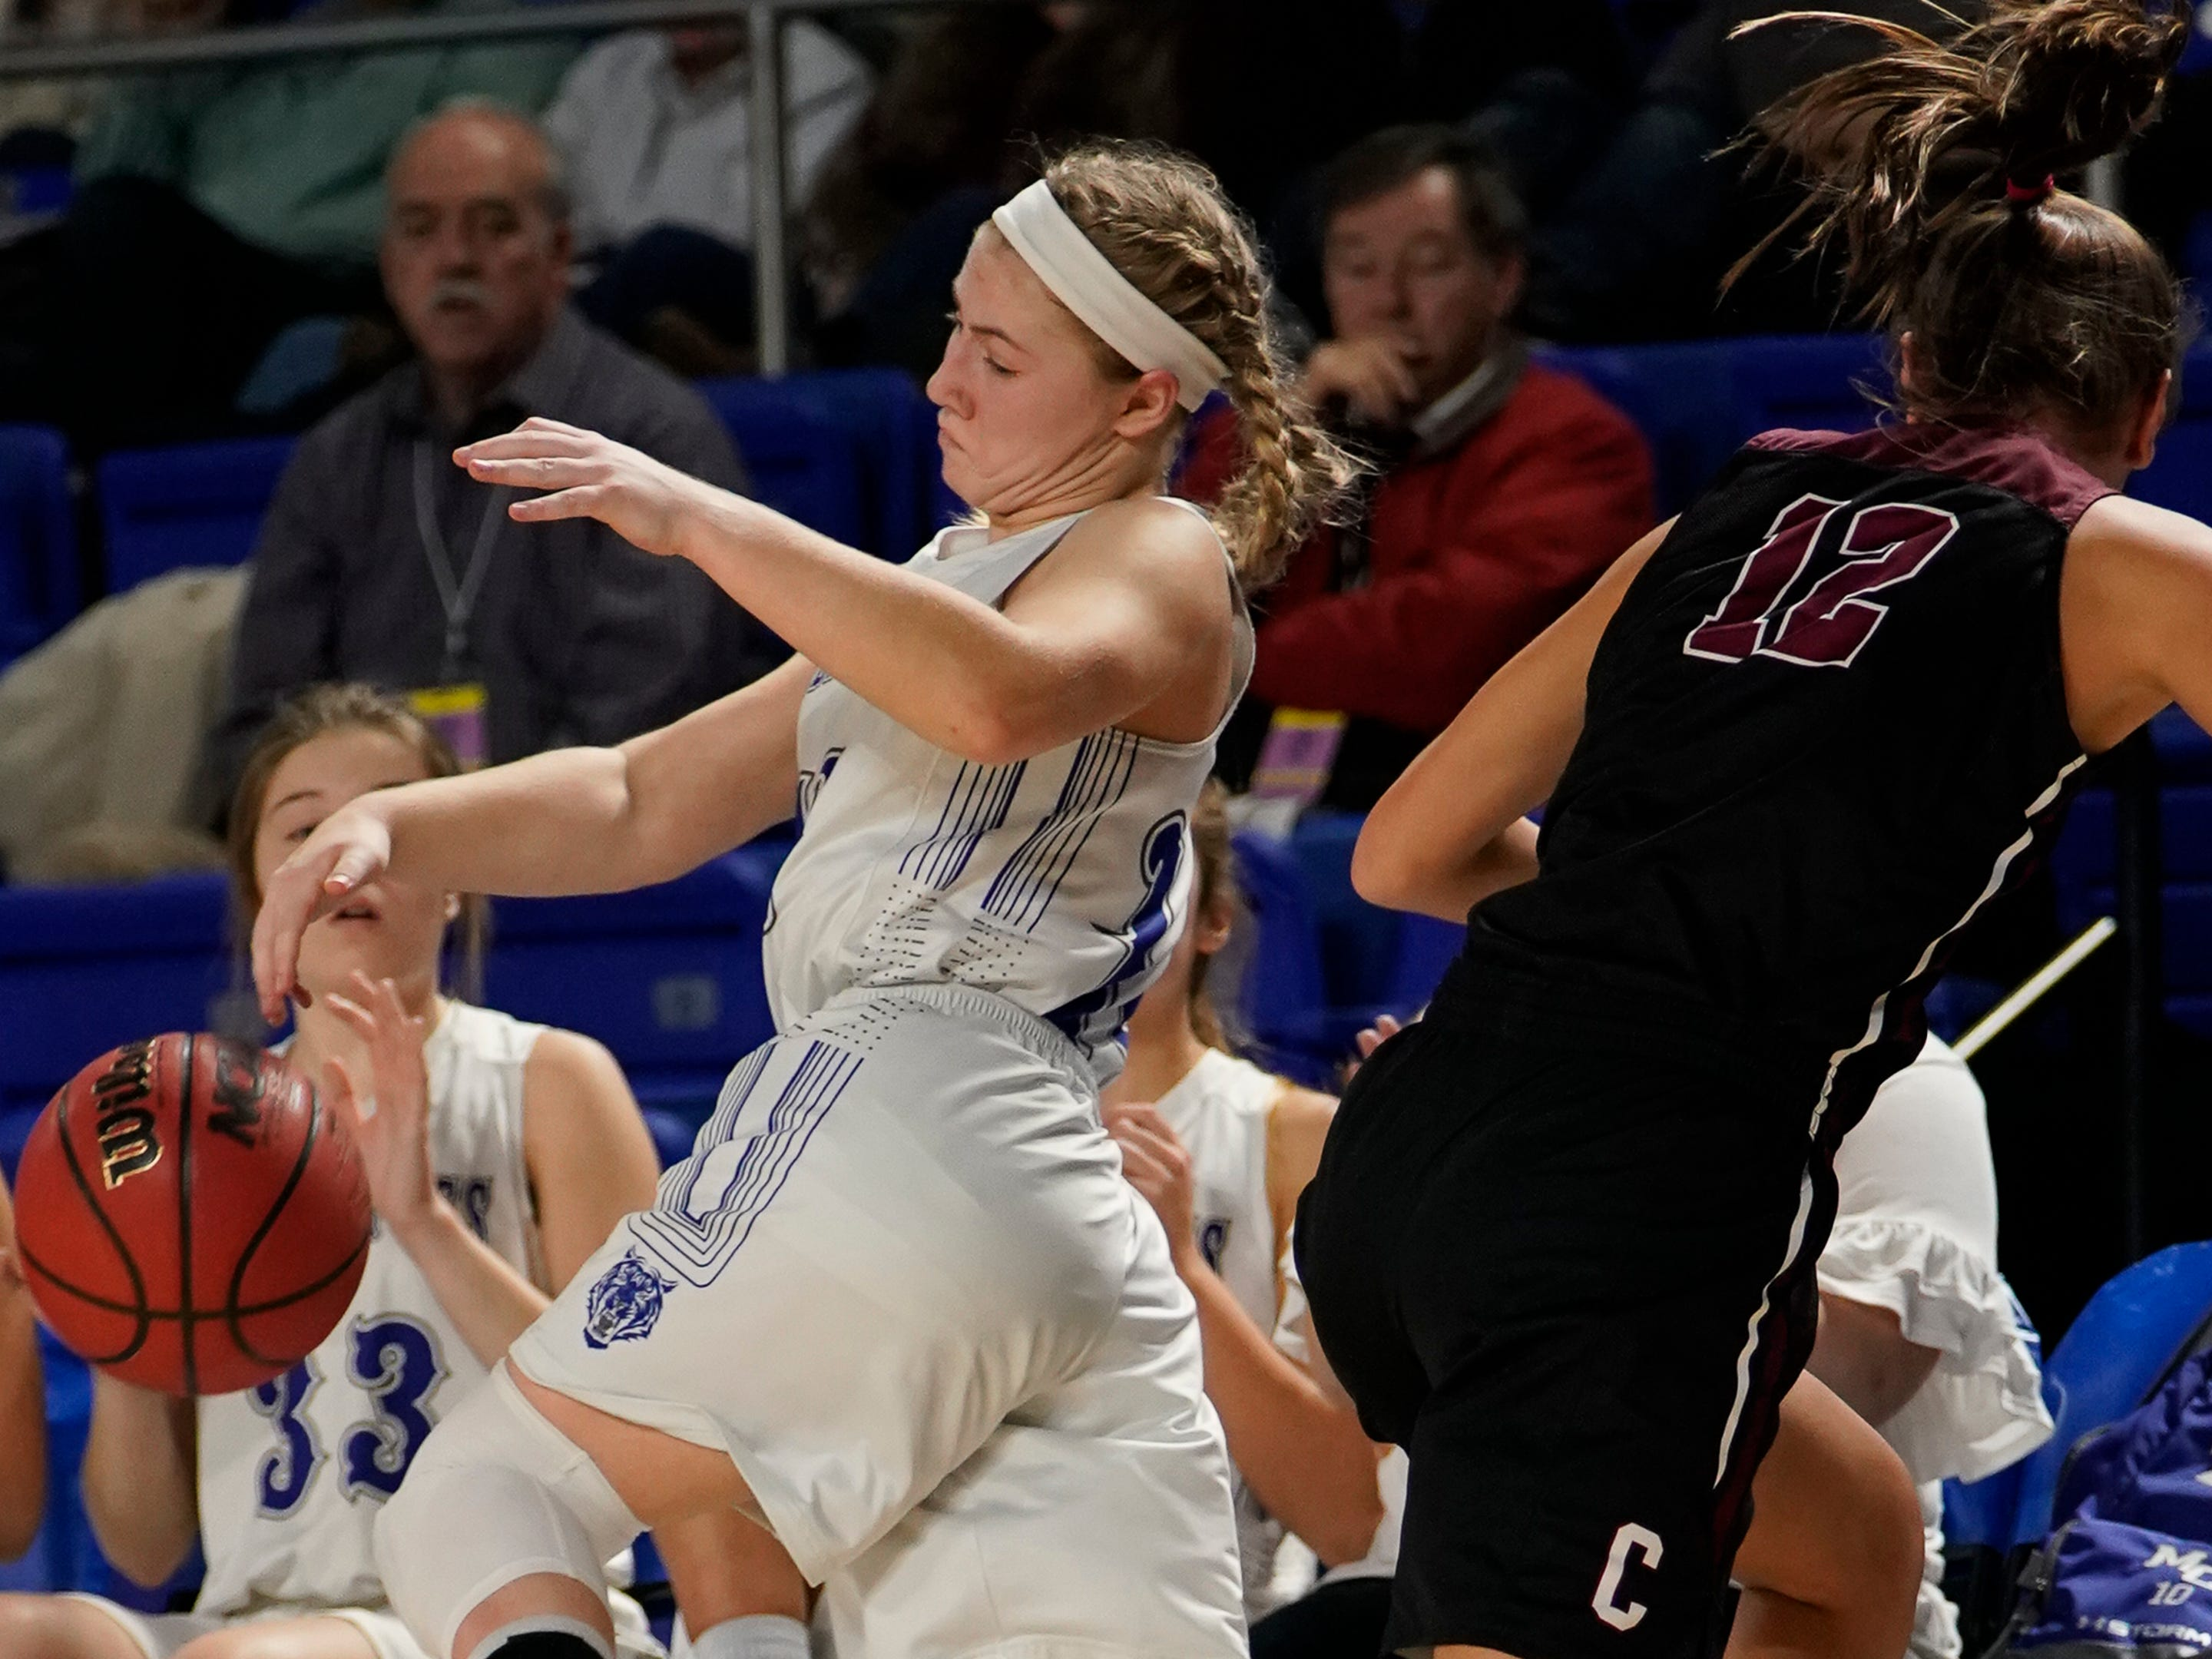 Macon Co. guard Abby Shoulders (14) tries to save the ball from going out of bounds past Cheatham Co. forward Jorden Bumpus (12) during the first half of their semifinal game in the Division I Class AA Girls TSSAA Girls State Championships at Murphy Center Friday, March 8, 2019 in Murfreesboro, Tenn.